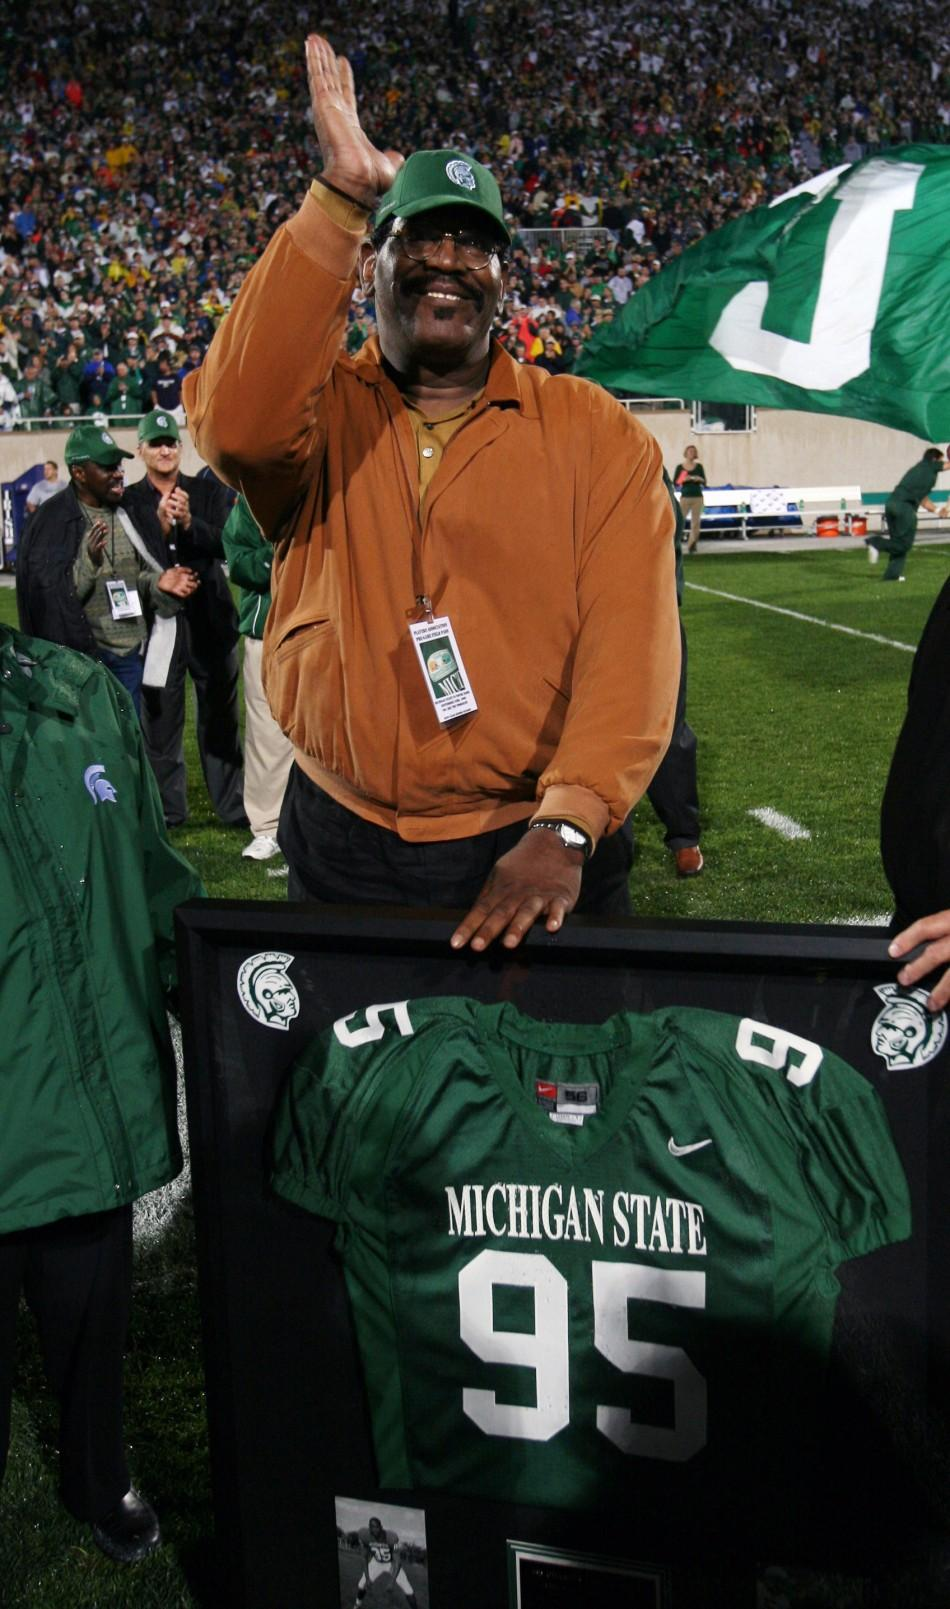 Former Michigan State football player and actor Smith reacts to having his jersey number retired in East Lansing Michigan